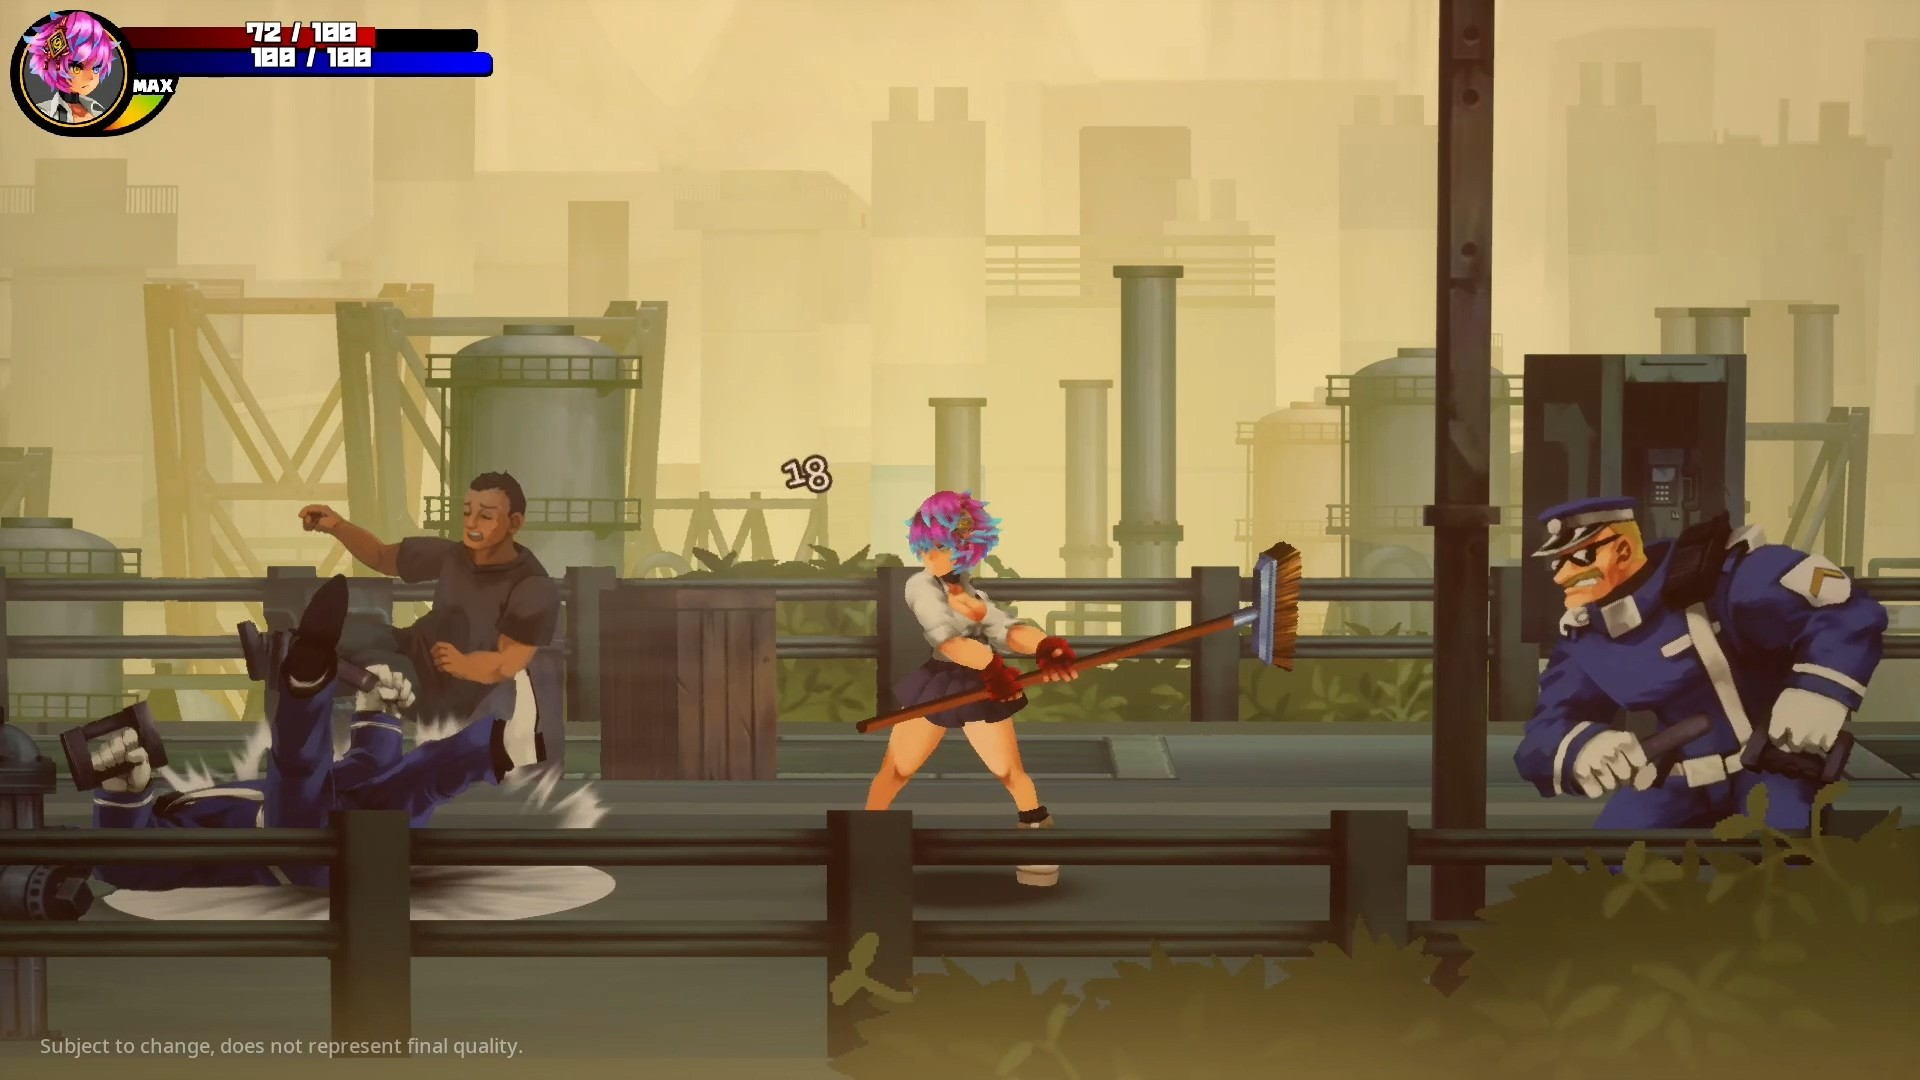 Pink-haired schoolgirl fighting cops in an industrial area in this Detained: Too Good for School screenshot.